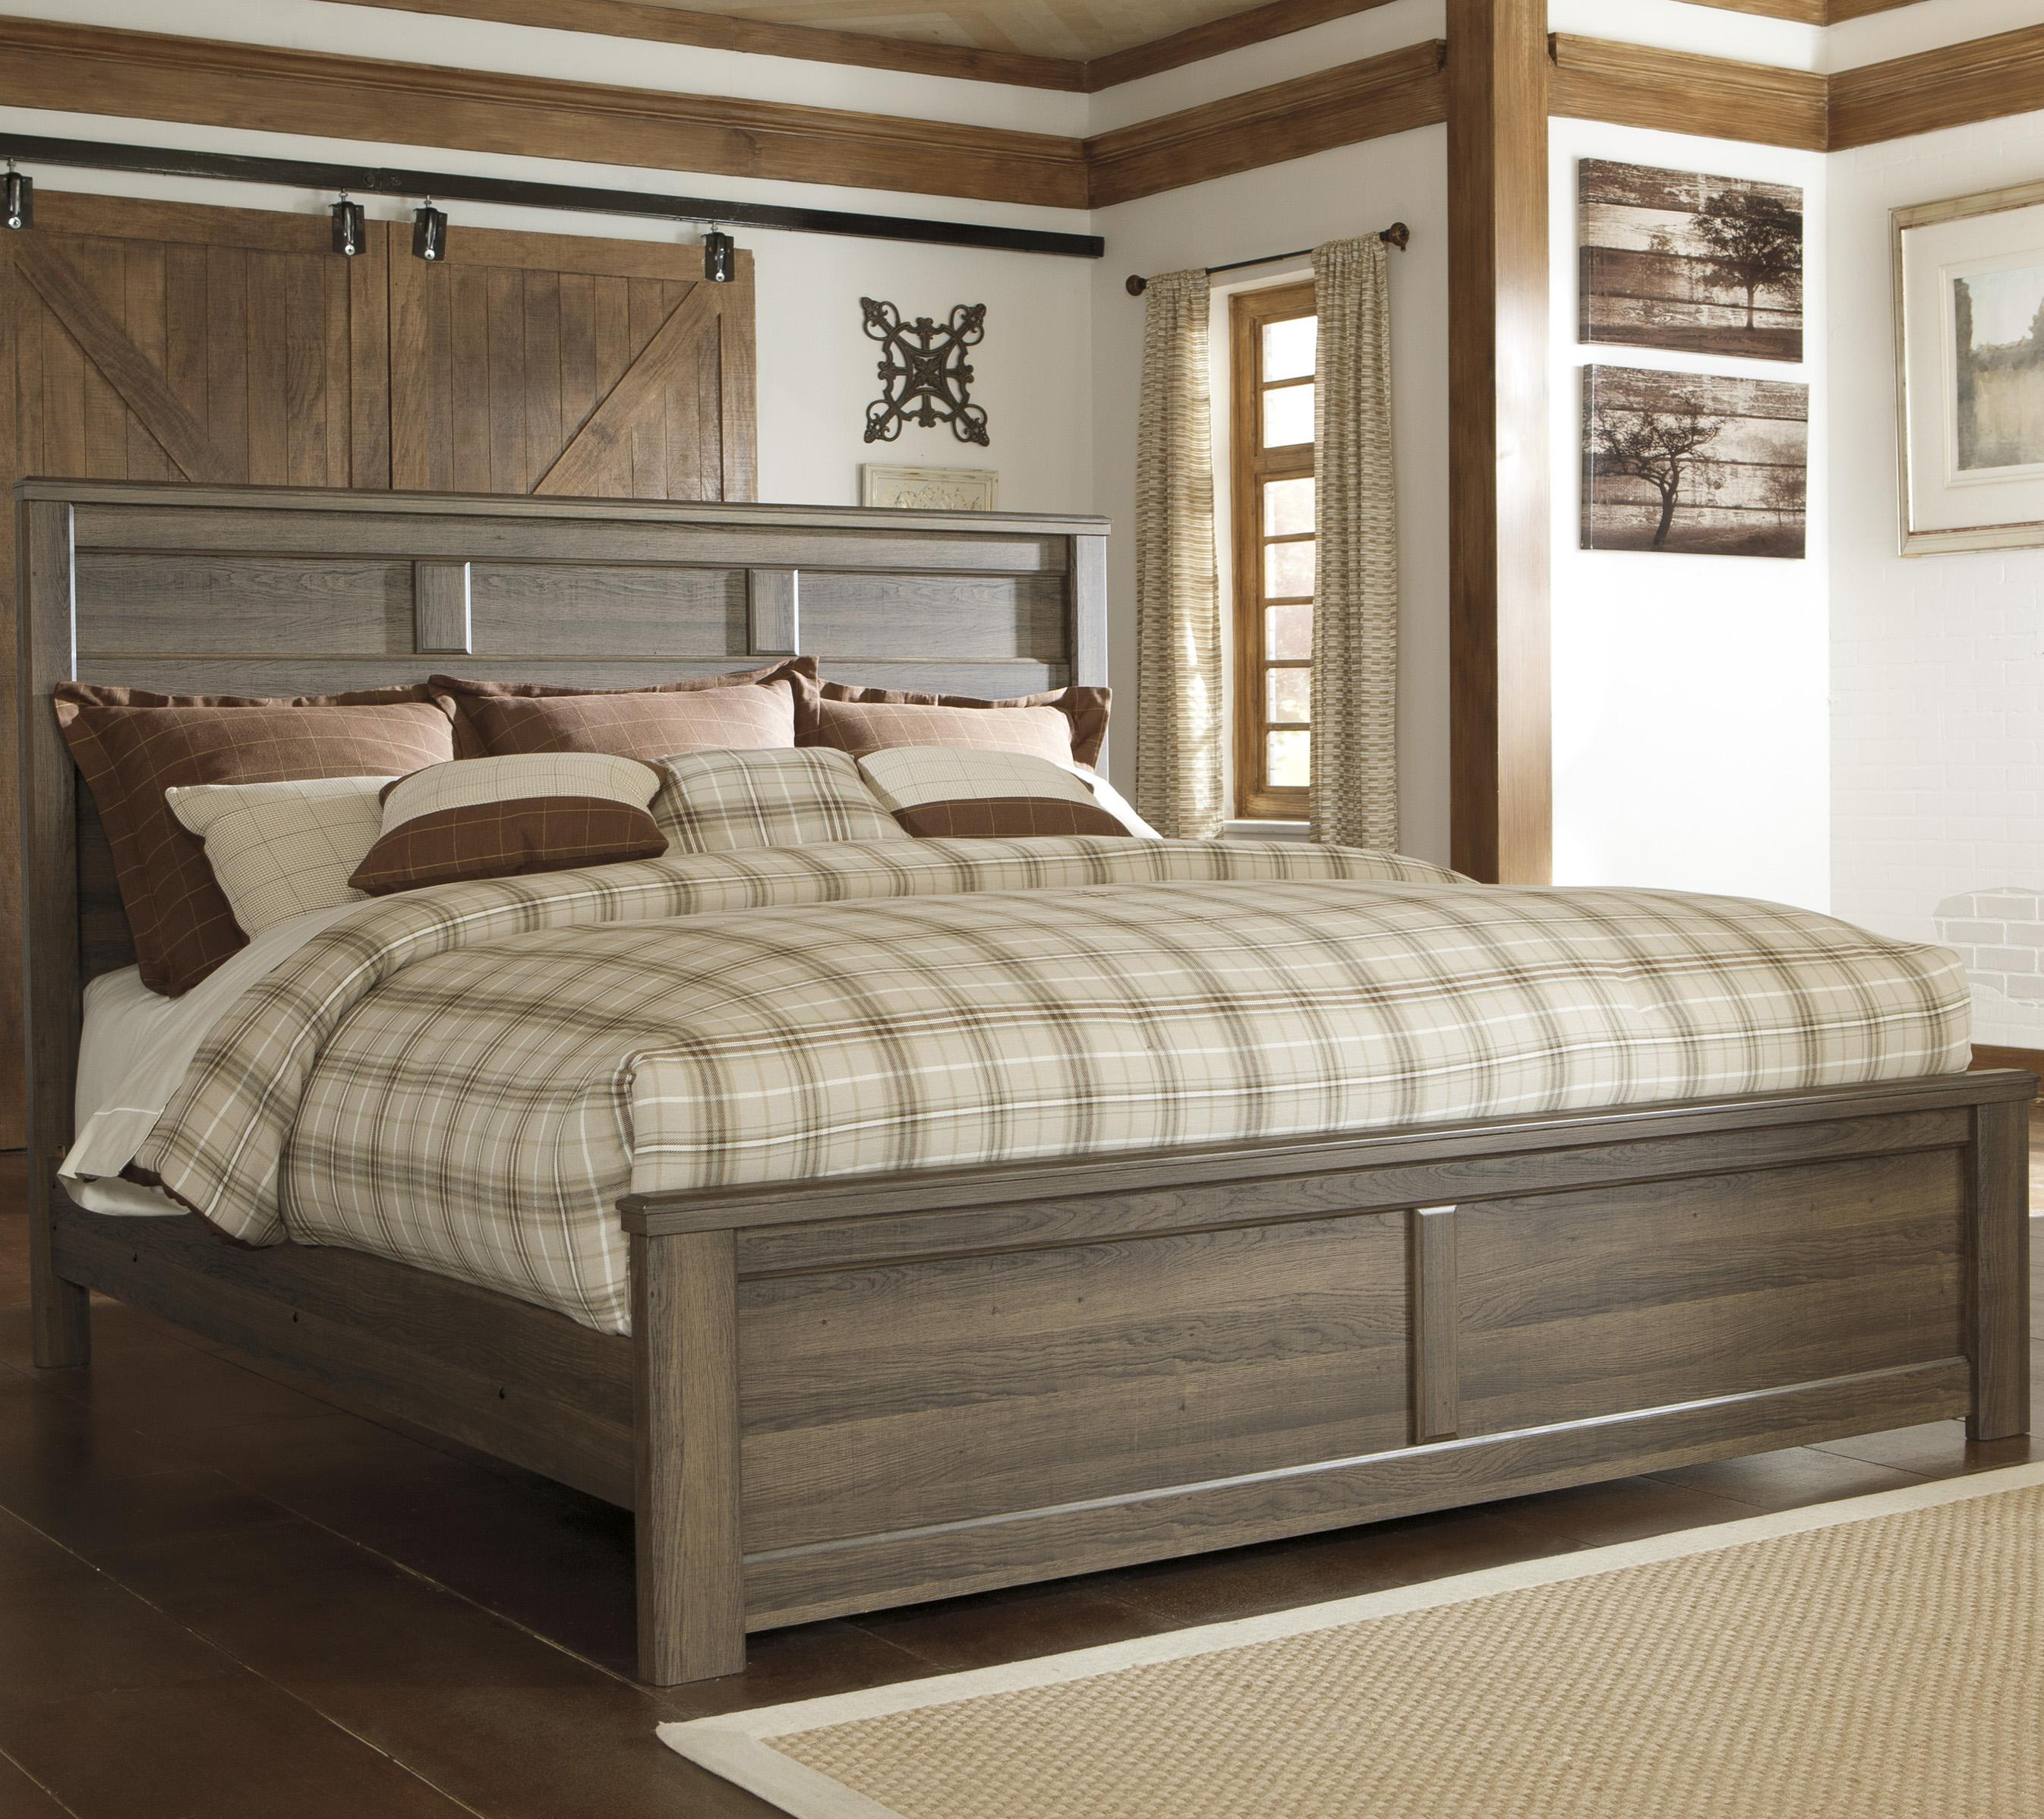 Signature Design by Ashley Juararo King Panel Bed - Item Number: B251-58+56+99